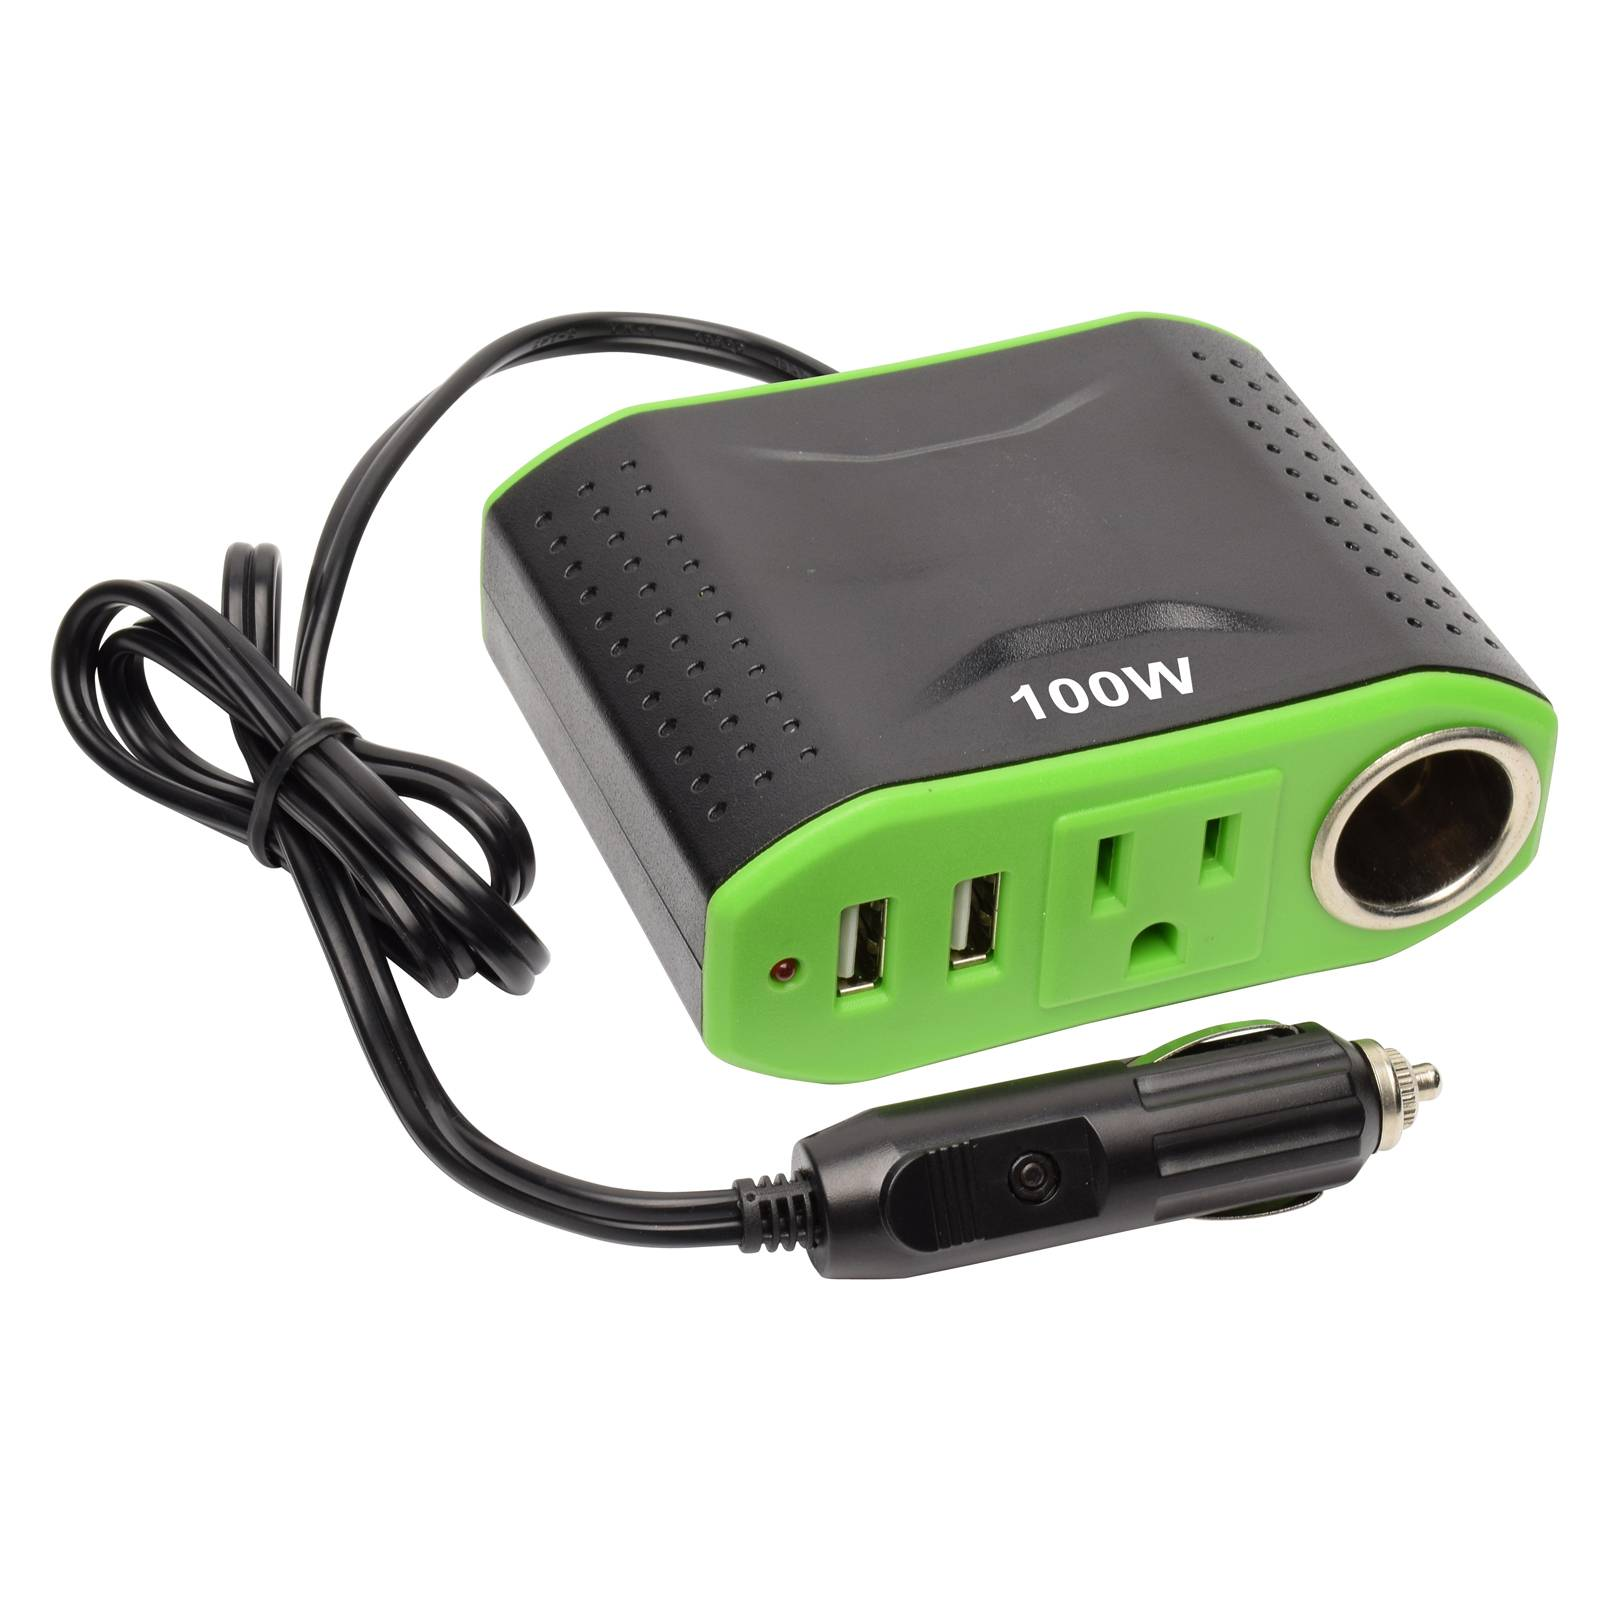 Professional China Power Inverter 1000w - DC To AC Portable Inverter DC 12V to 110V AC Converter with Dual USB Ports and one DC 12V Outlet Car Power Inverter with 12V Outlet & 2 USB Charging Ports, Auto Inverter, Ultra Compact – Tonny detail pictures